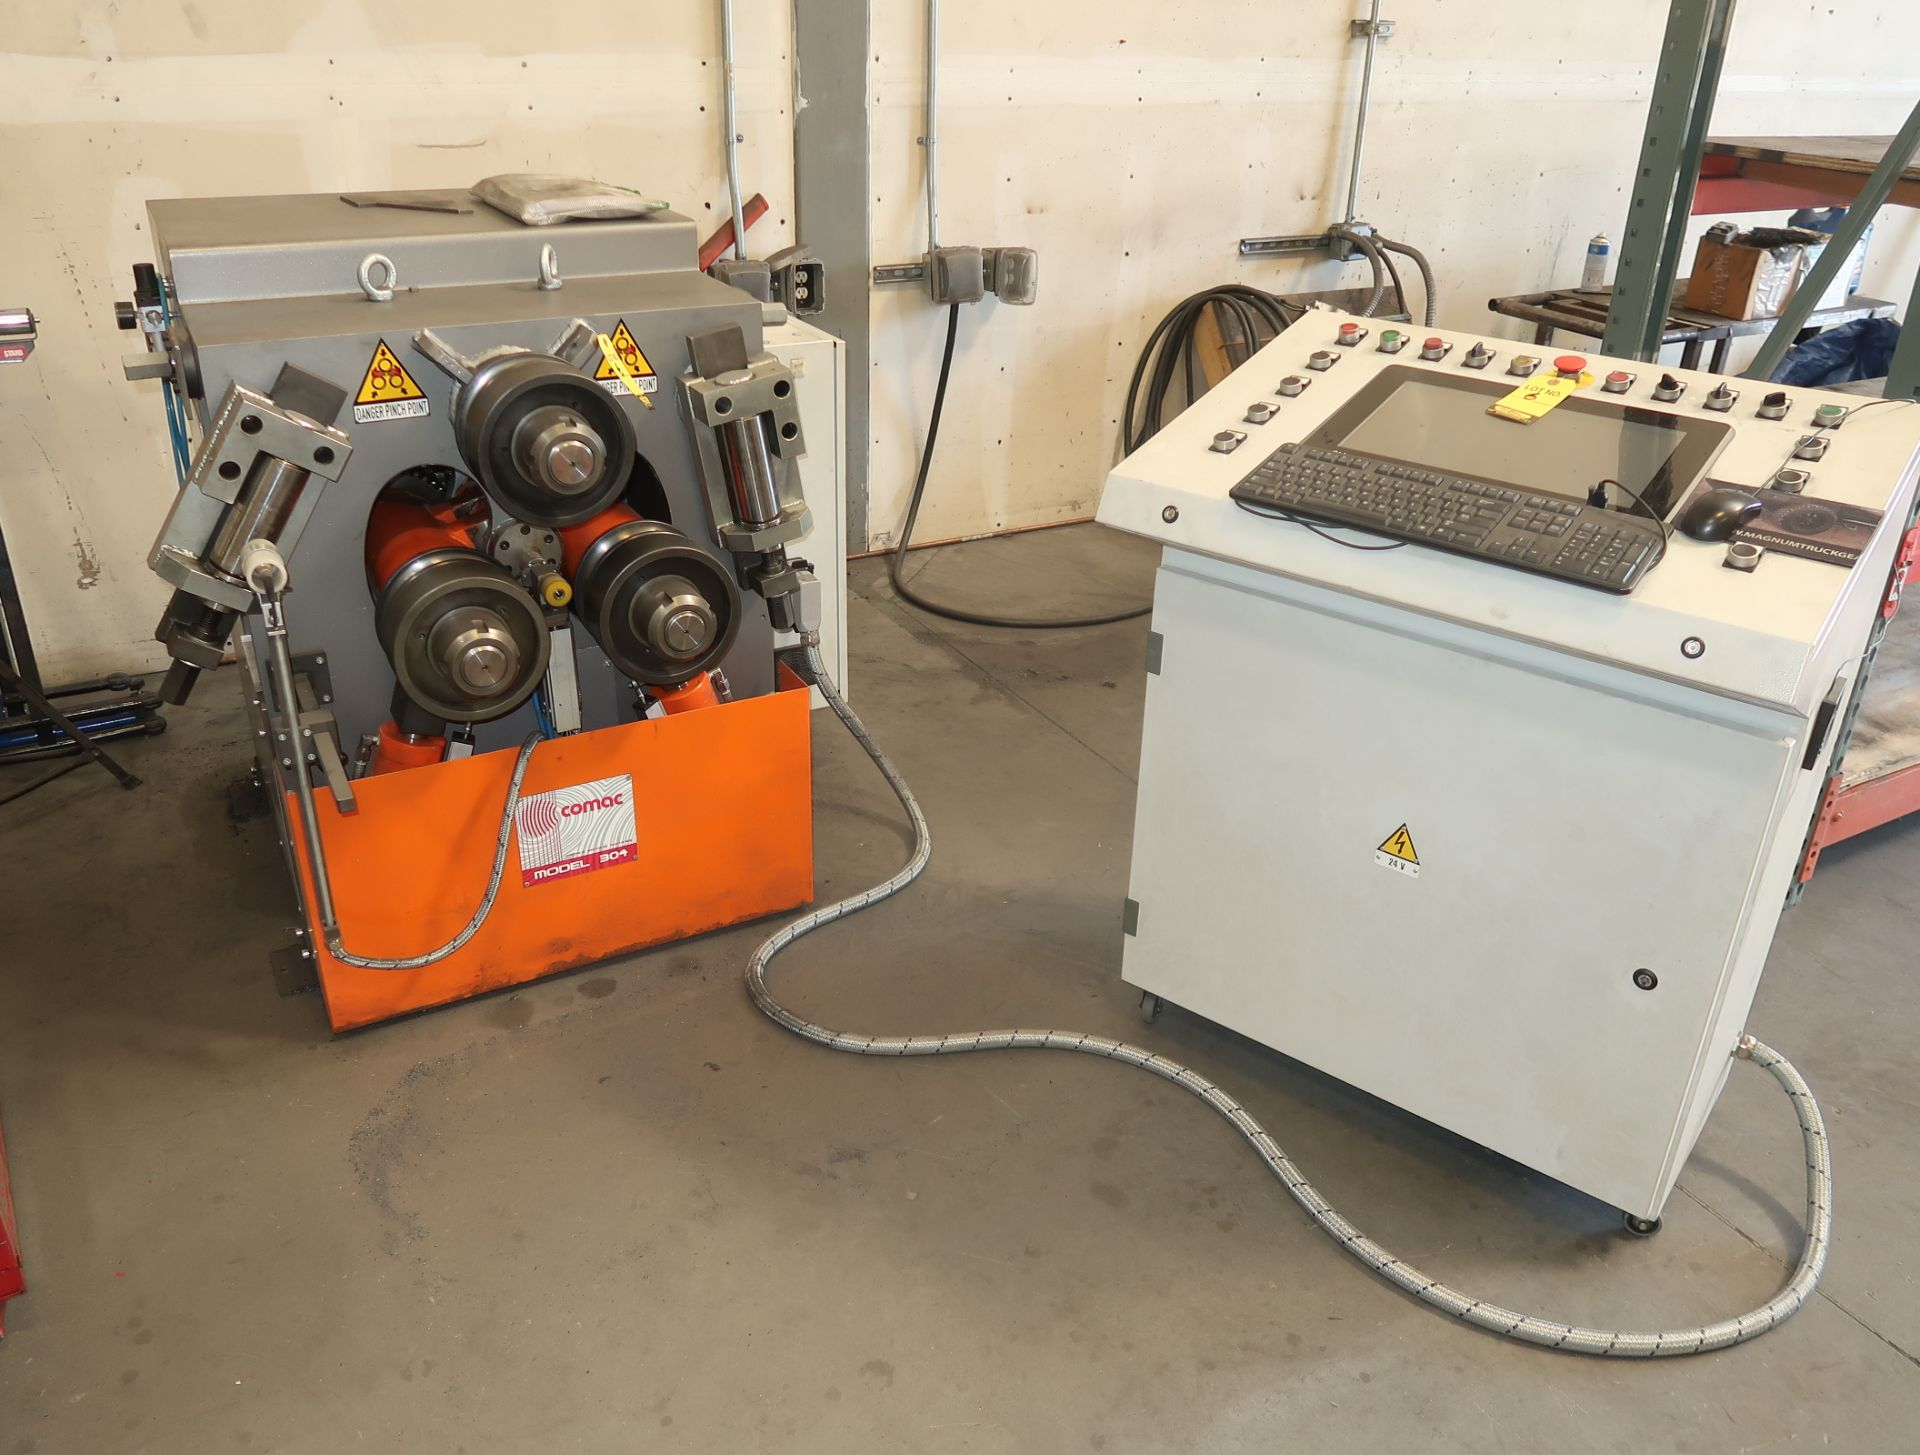 Lot 6 - 2017 COMAC NC SECTIONAL ROLL BENDER W/ CONTROL PANEL MDL. 304CN3.1V SN. 3040262